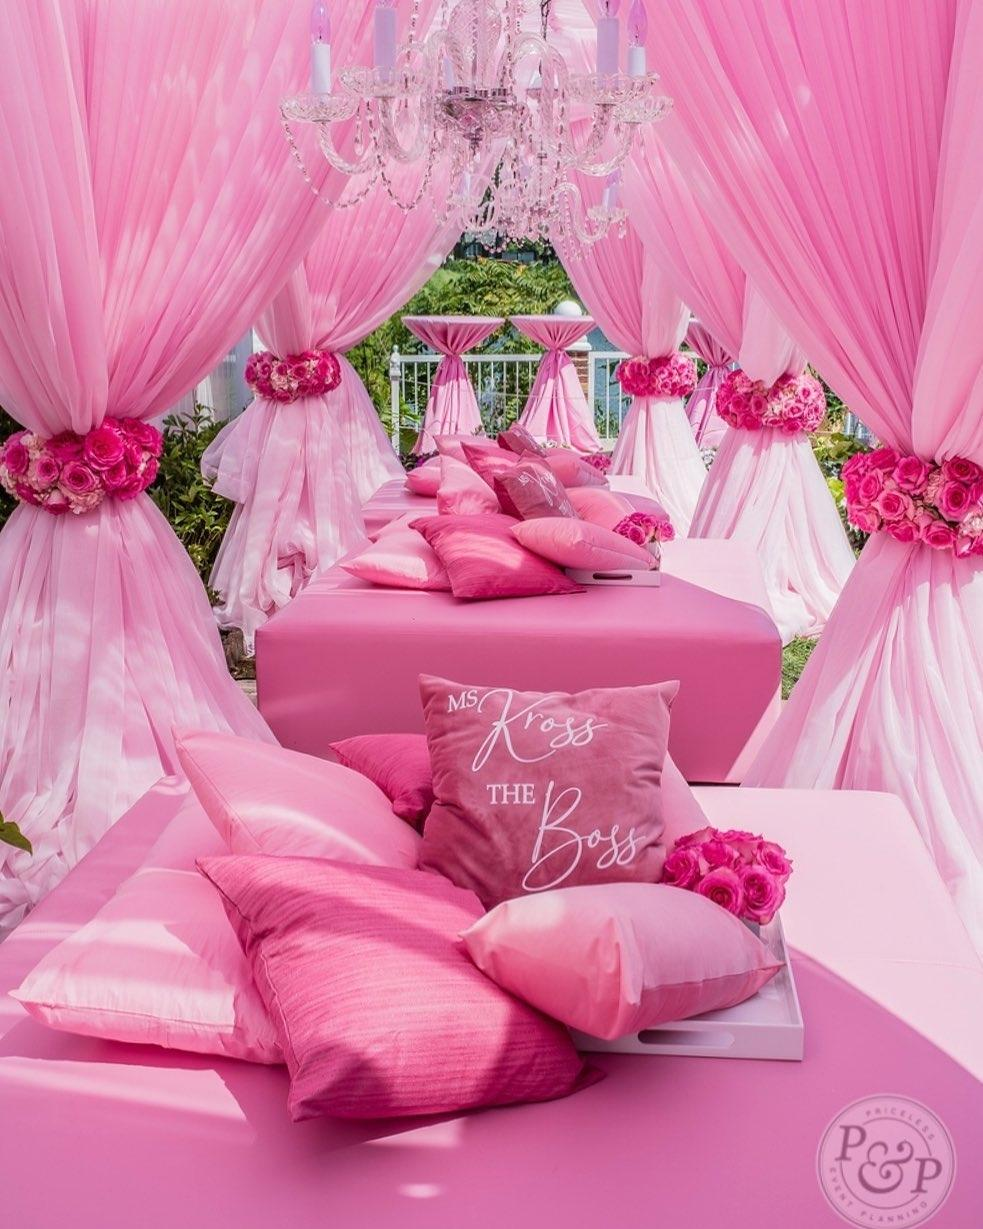 Nikita Gibsons Pink Baby Shower Decor Party and Maternity and Pregnancy Baby Bump Photoshoot